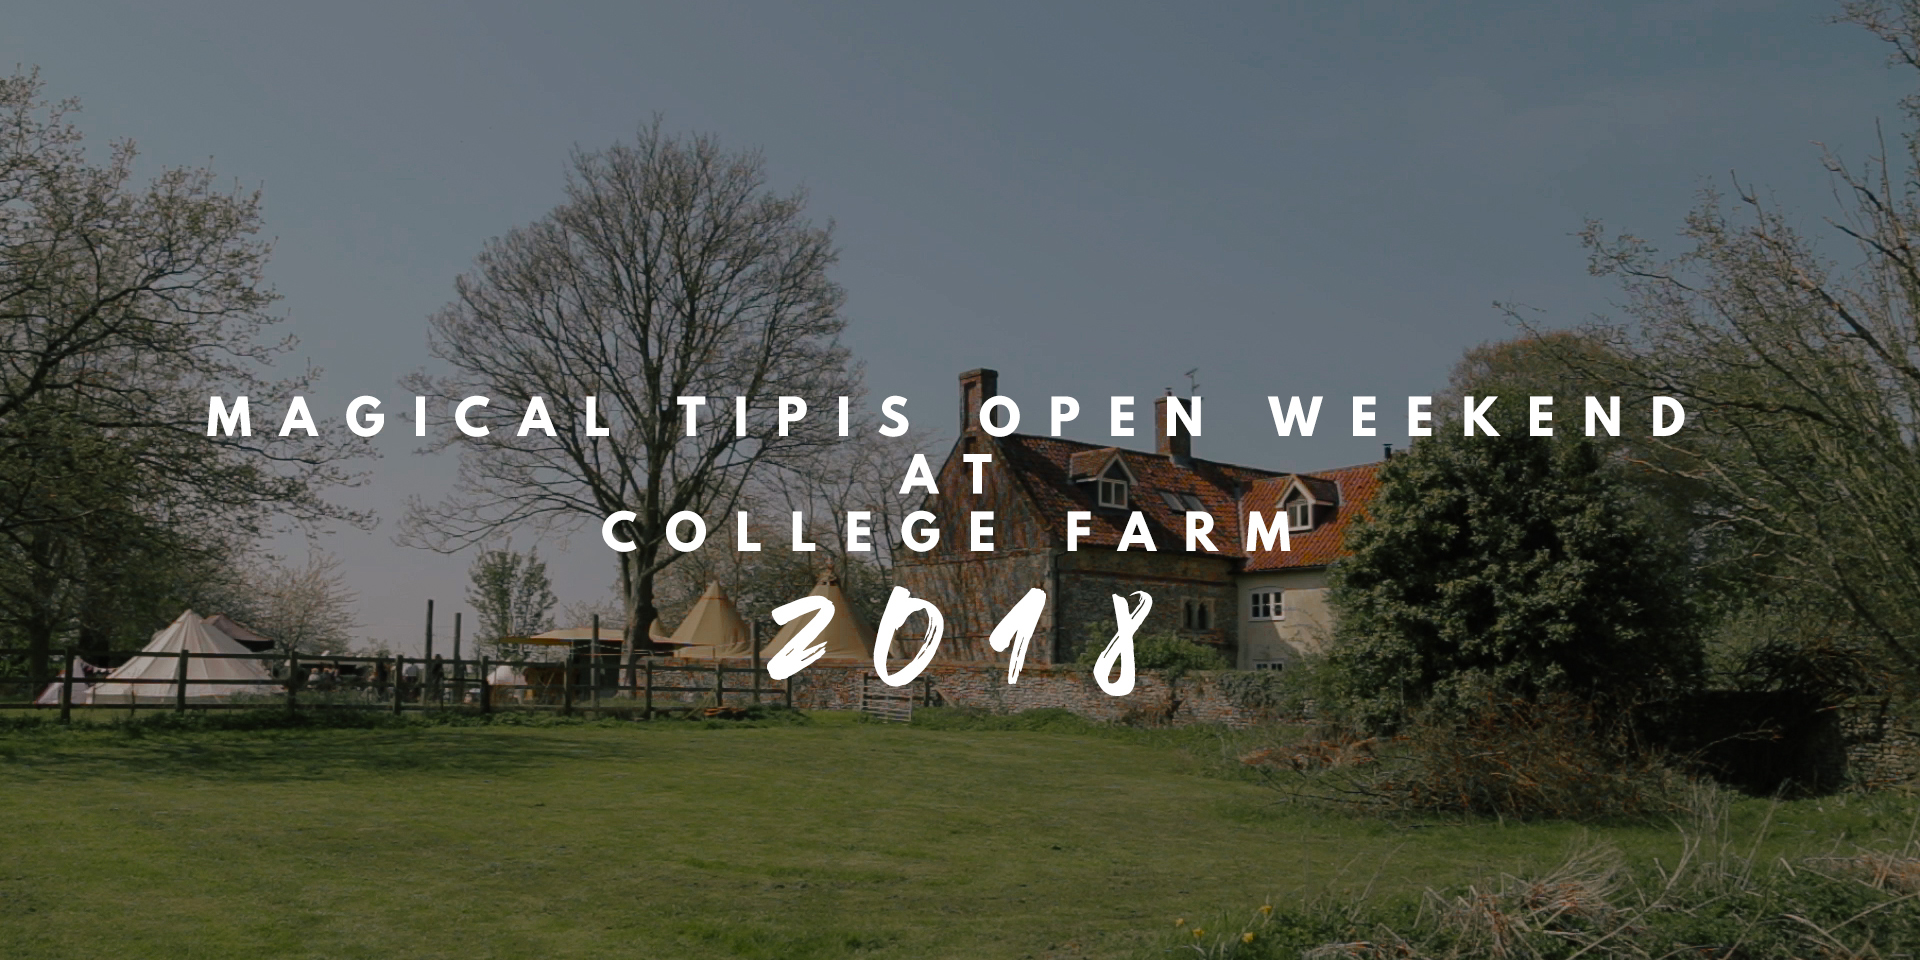 College Farm 2018 Thumbnail 2 for website